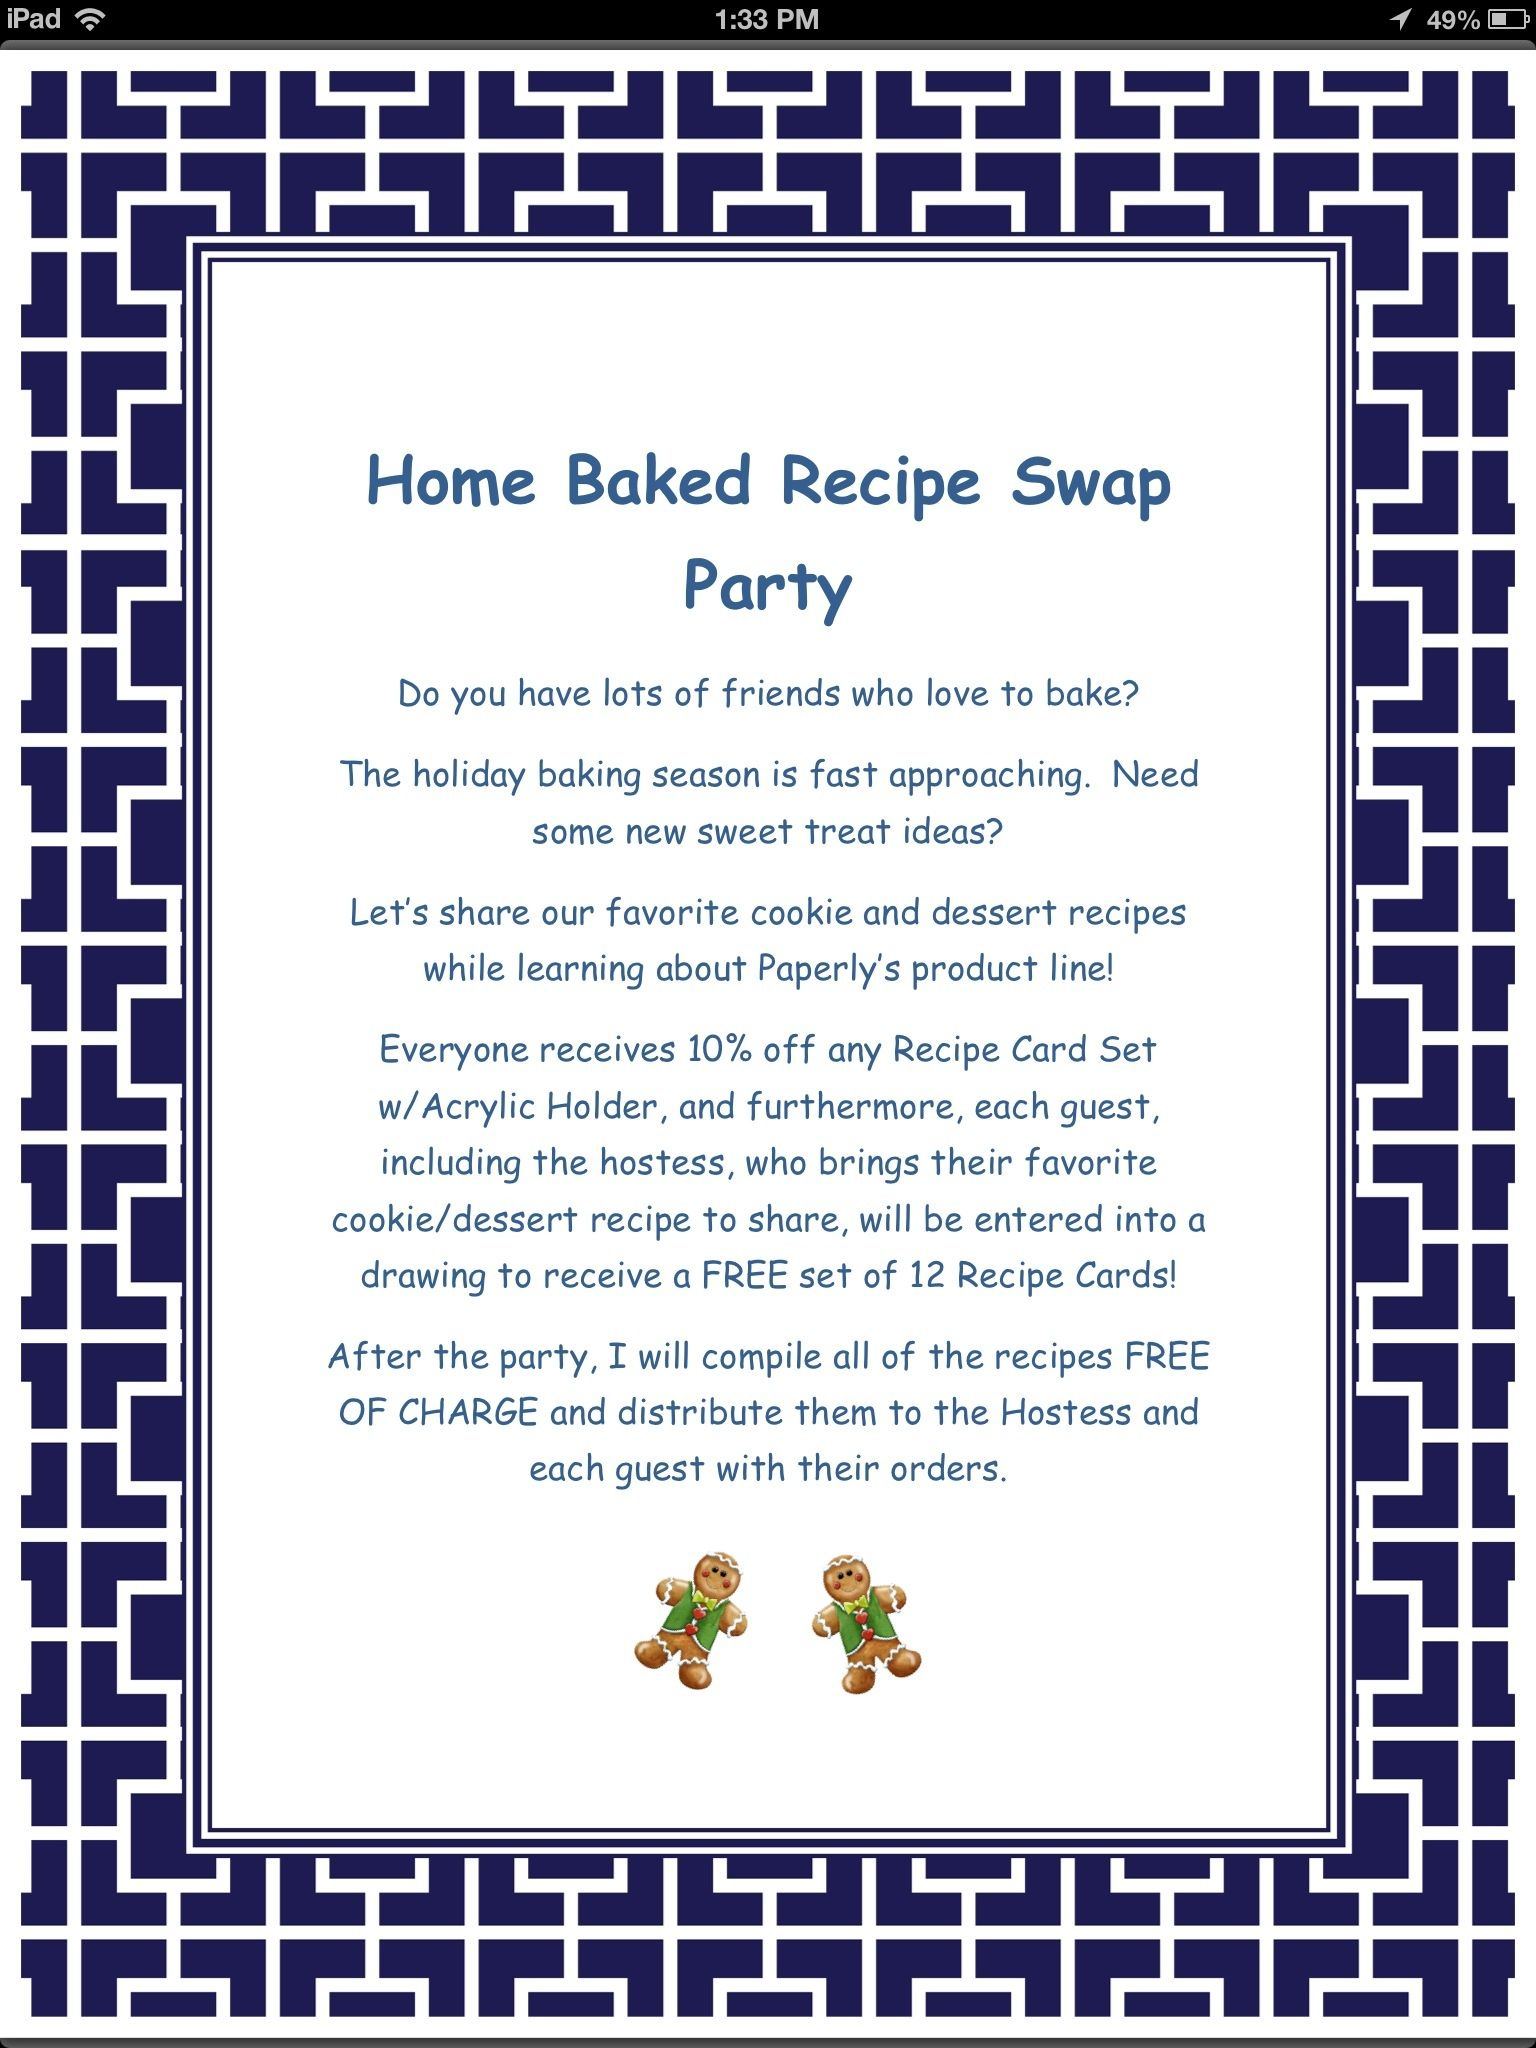 Home Baked Recipe Swap Party! Home party plan holiday sales idea ...